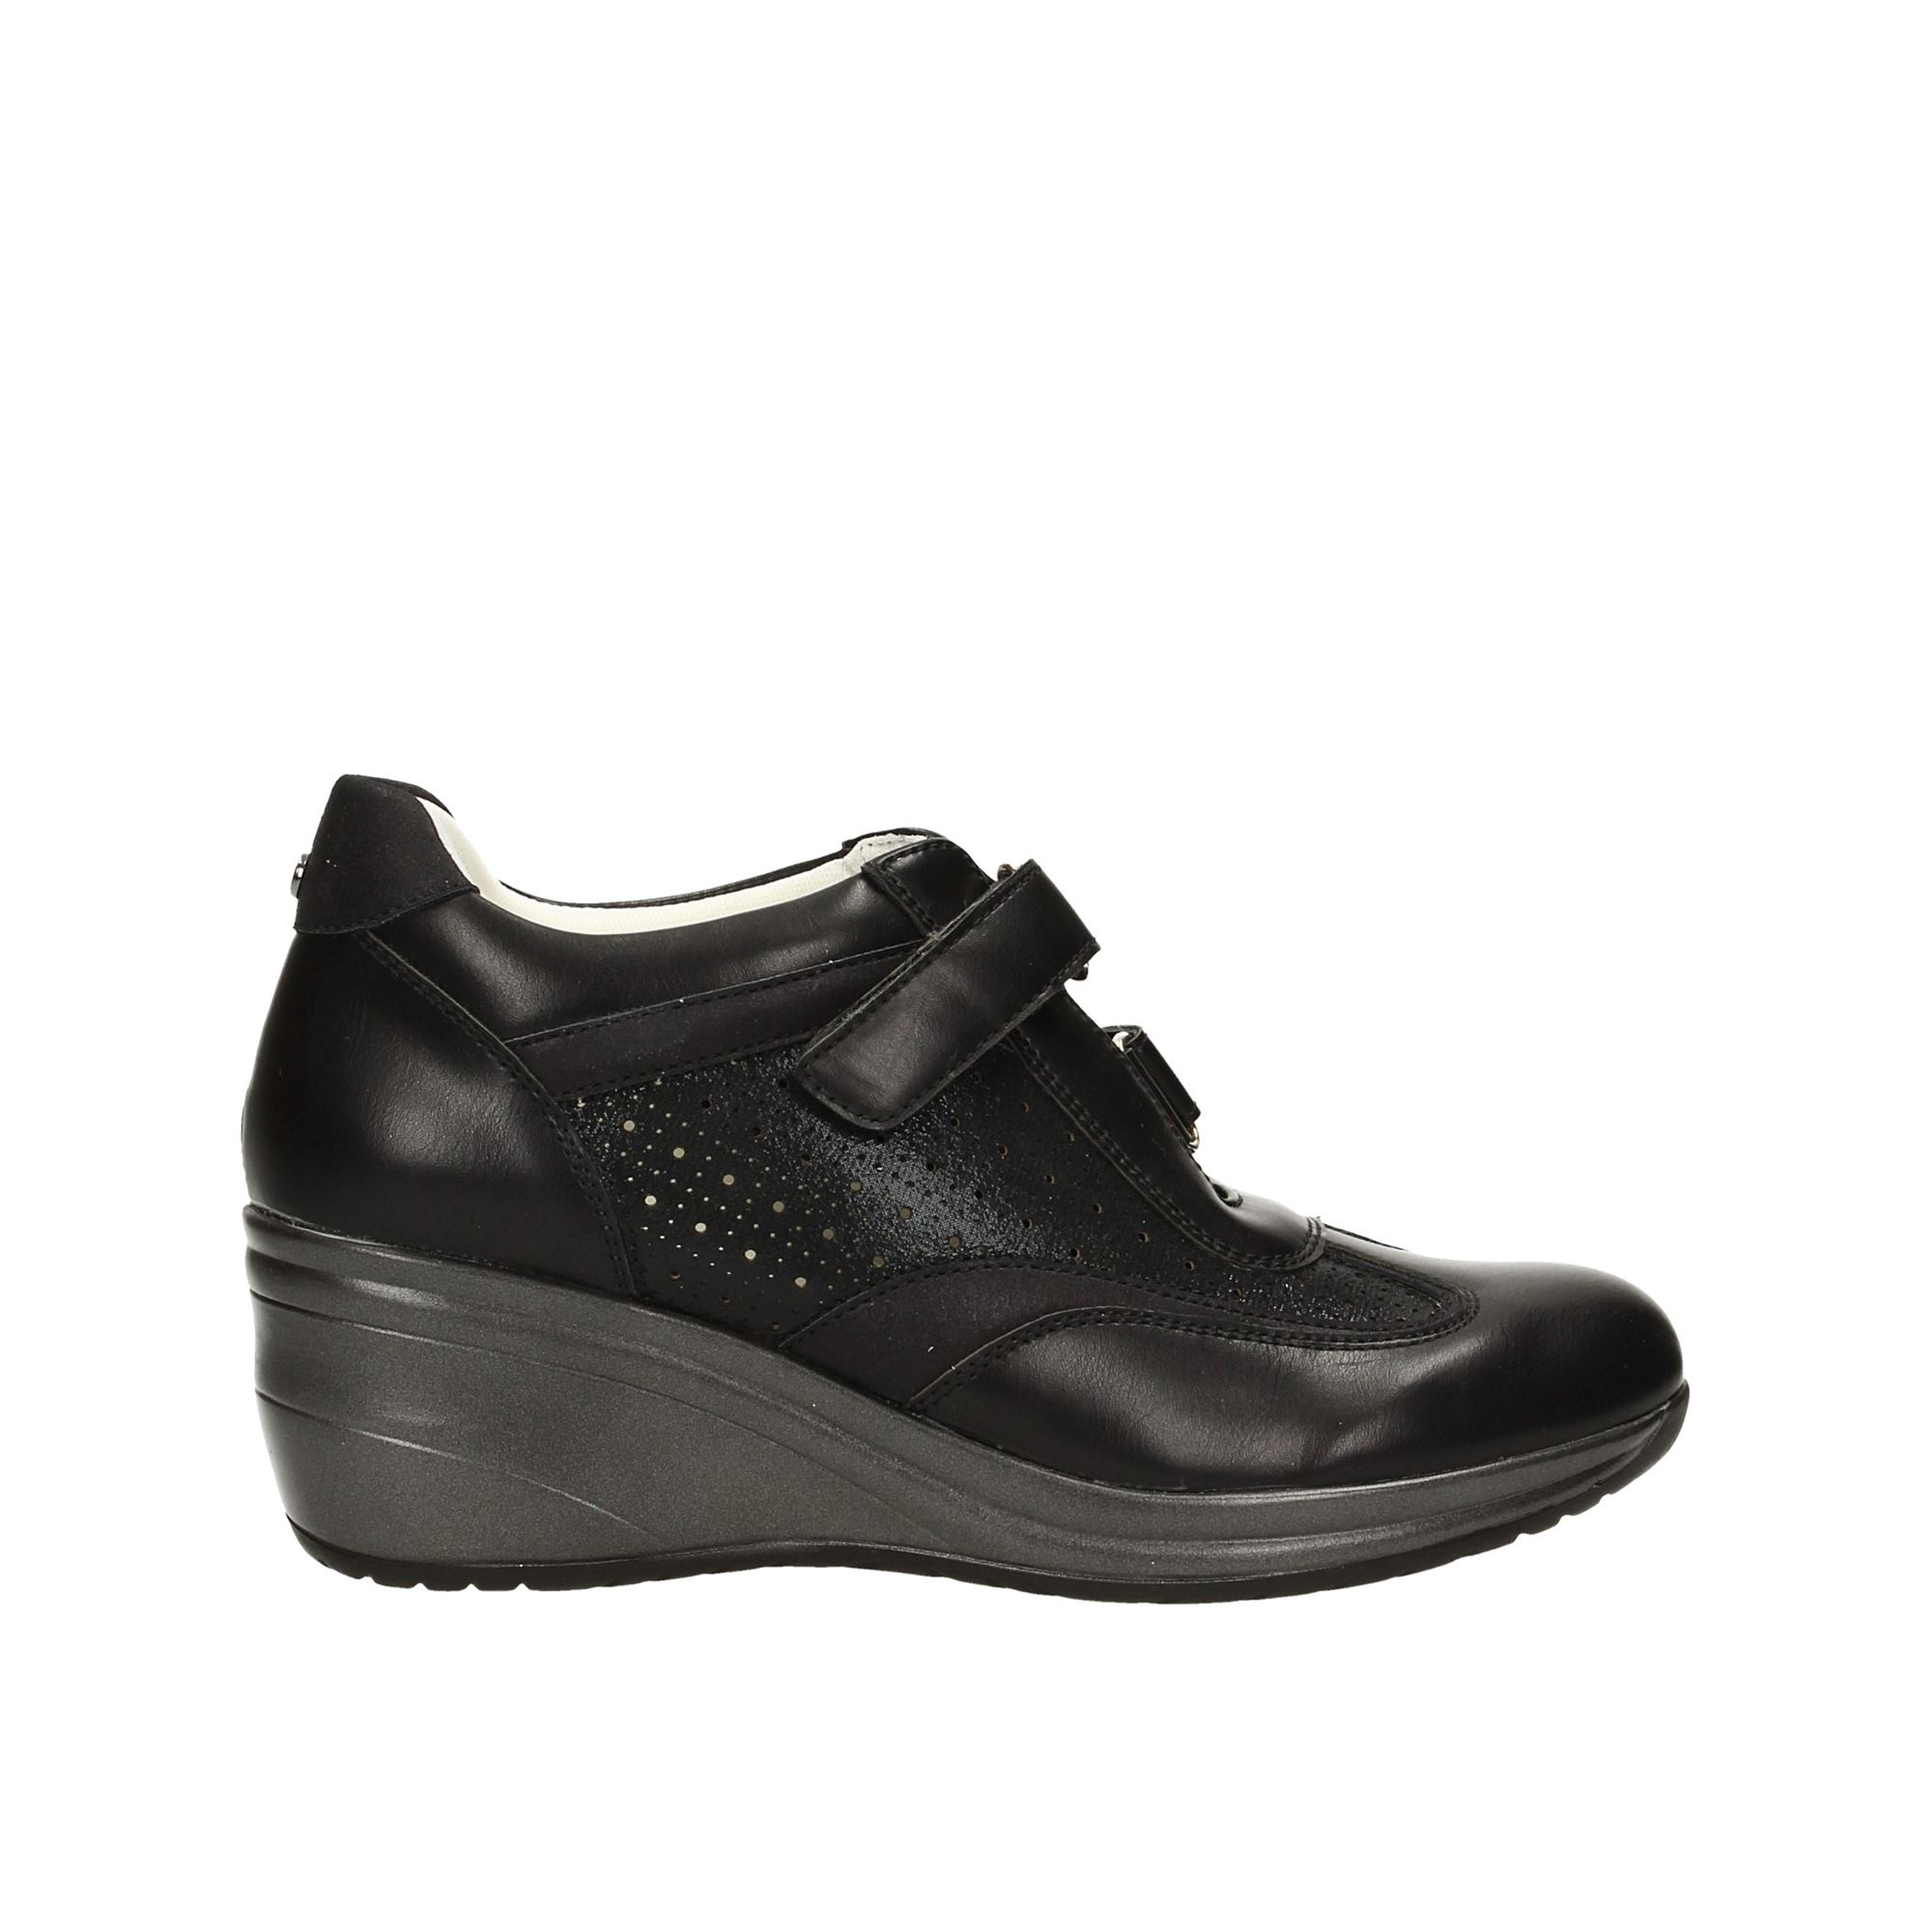 Tata Italia Shoes Woman Sneakers Black T18074